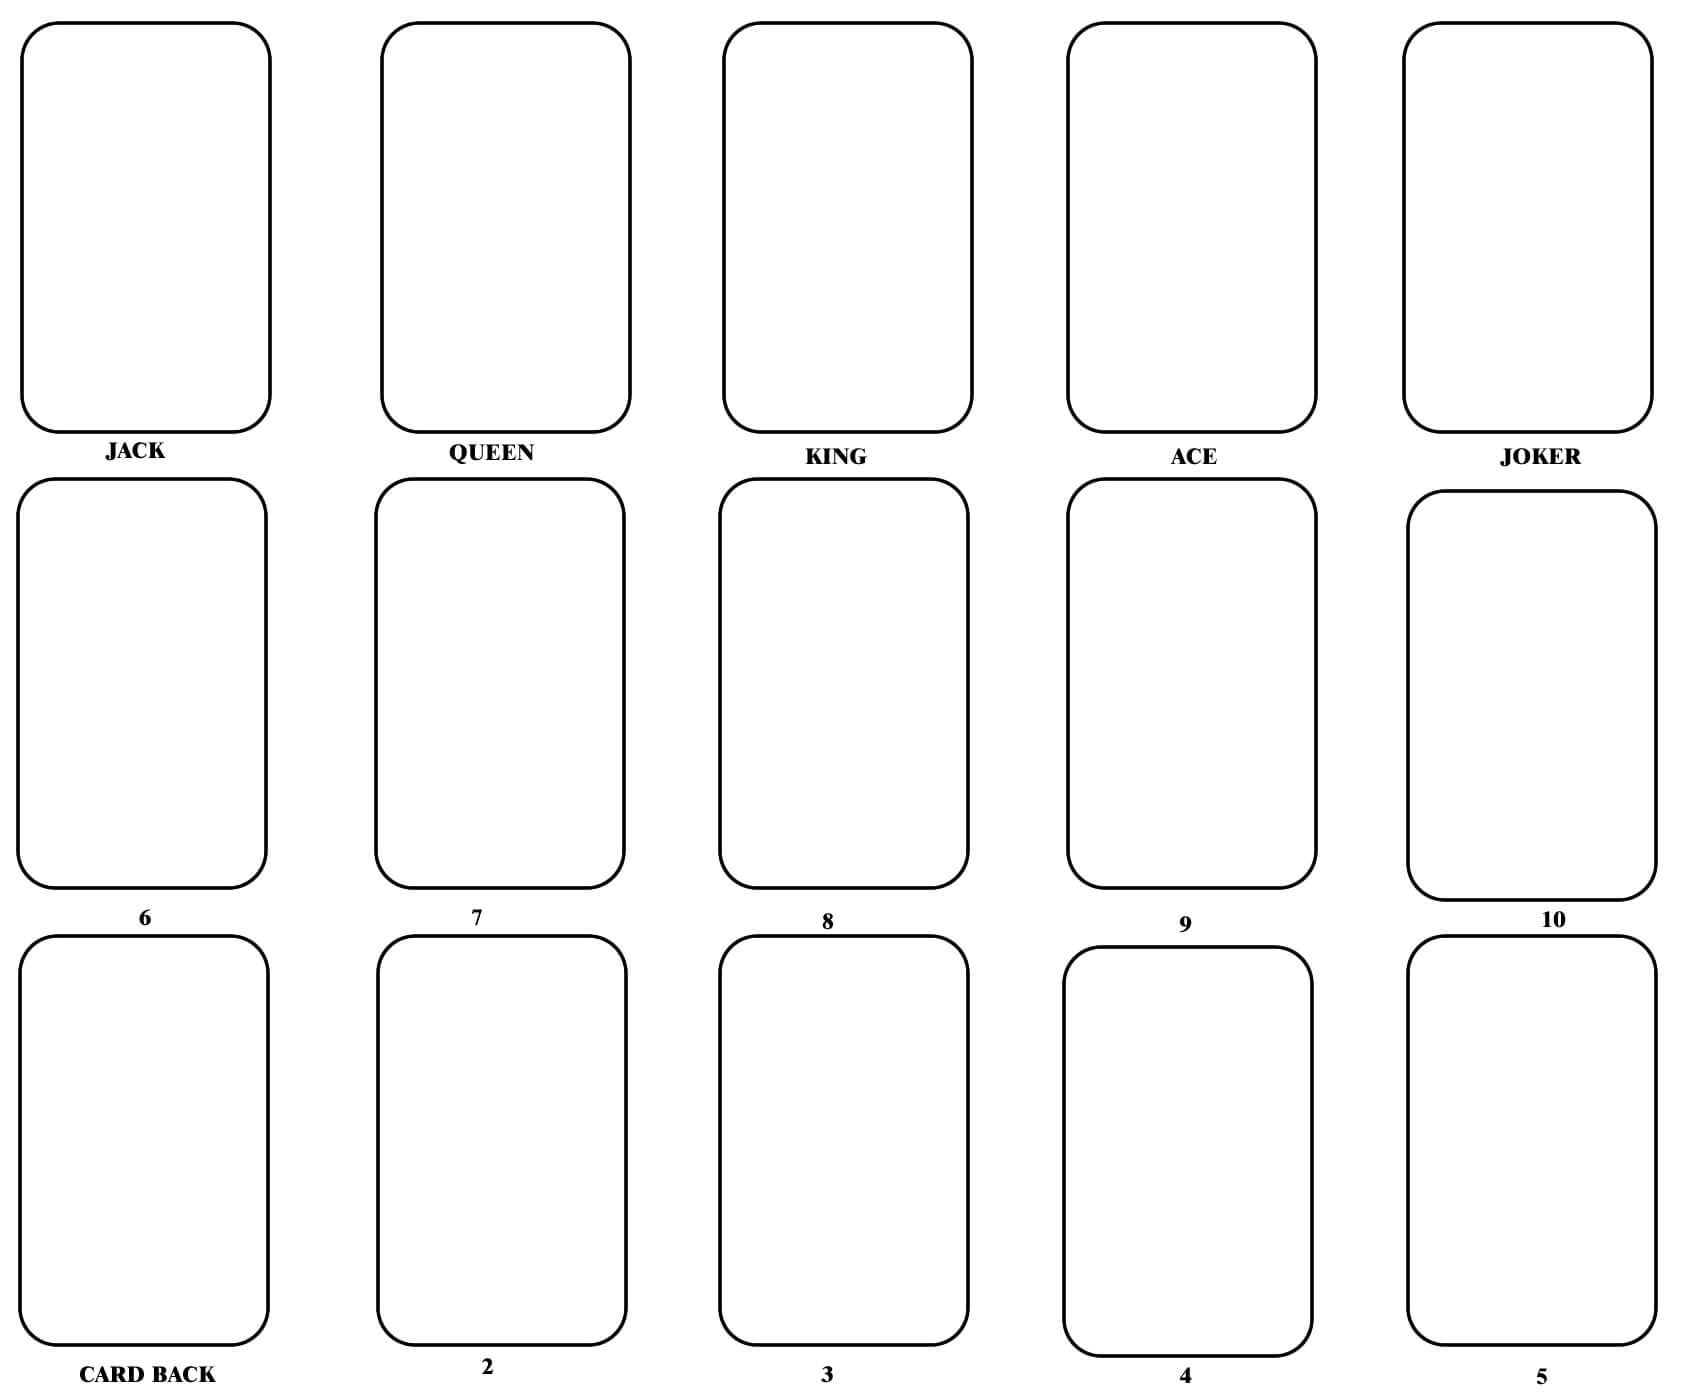 Blank+Playing+Card+Template | Flash Card Template, Blank Throughout Template For Playing Cards Printable